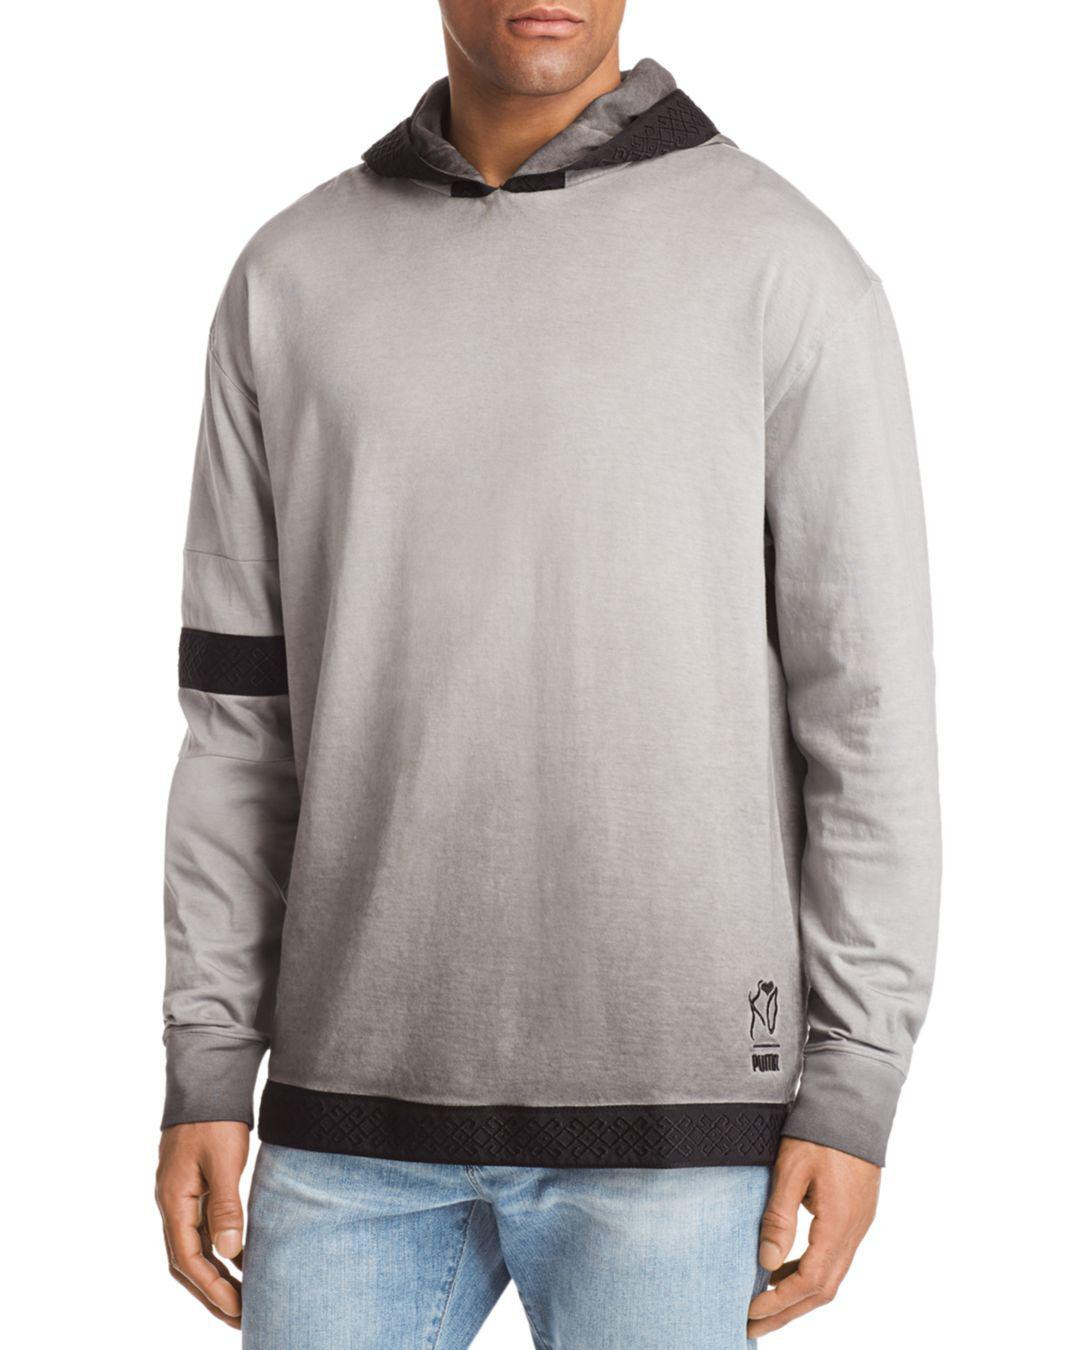 7c55a0943adc PUMA X Xo Faded Hoodie in Gray for Men - Lyst